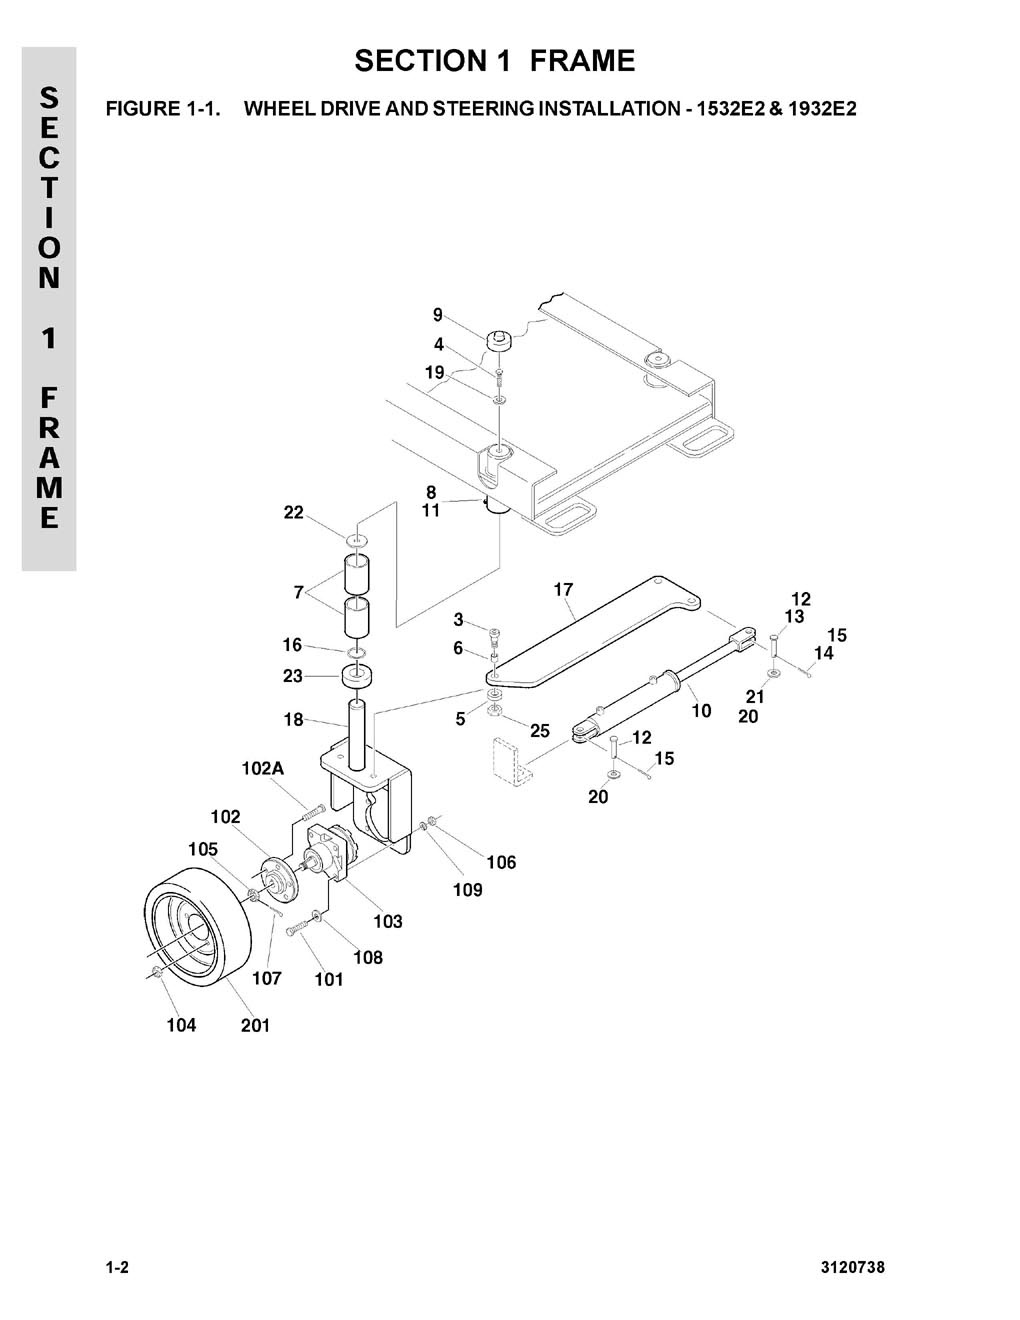 Construction Equipment Parts Jlg From Gcironcom 2632e2 Wiring Diagram Decals Installation 1532e2 Country Spec